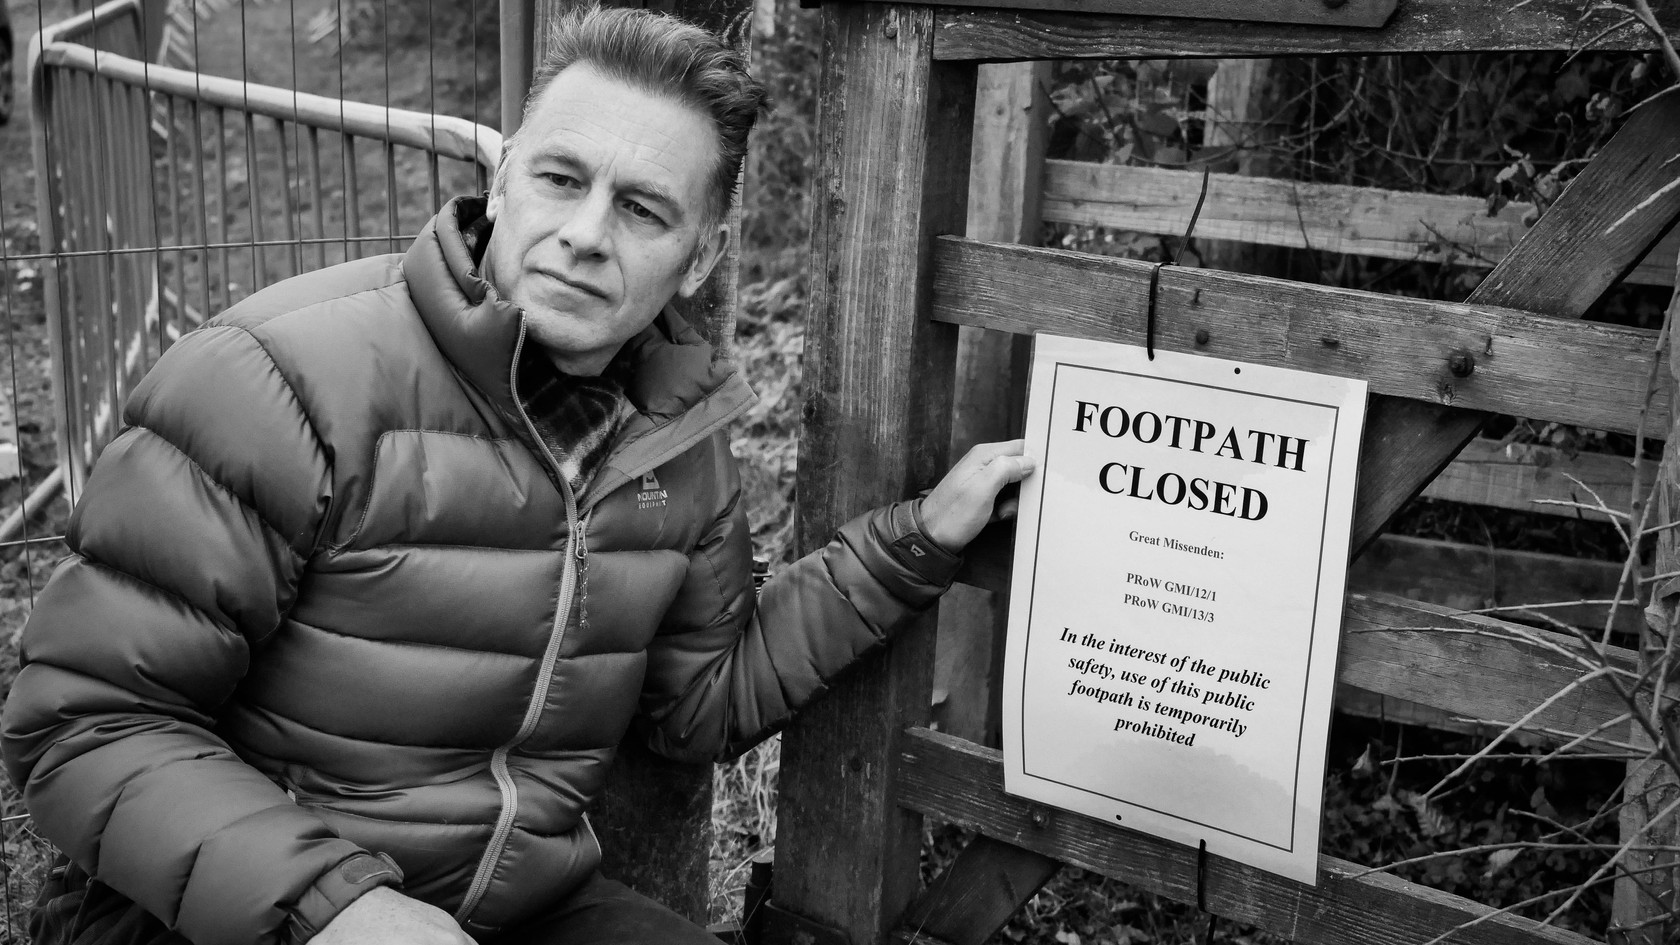 Chris Packham Rethink HS2 campaign protecting ancient woodlands